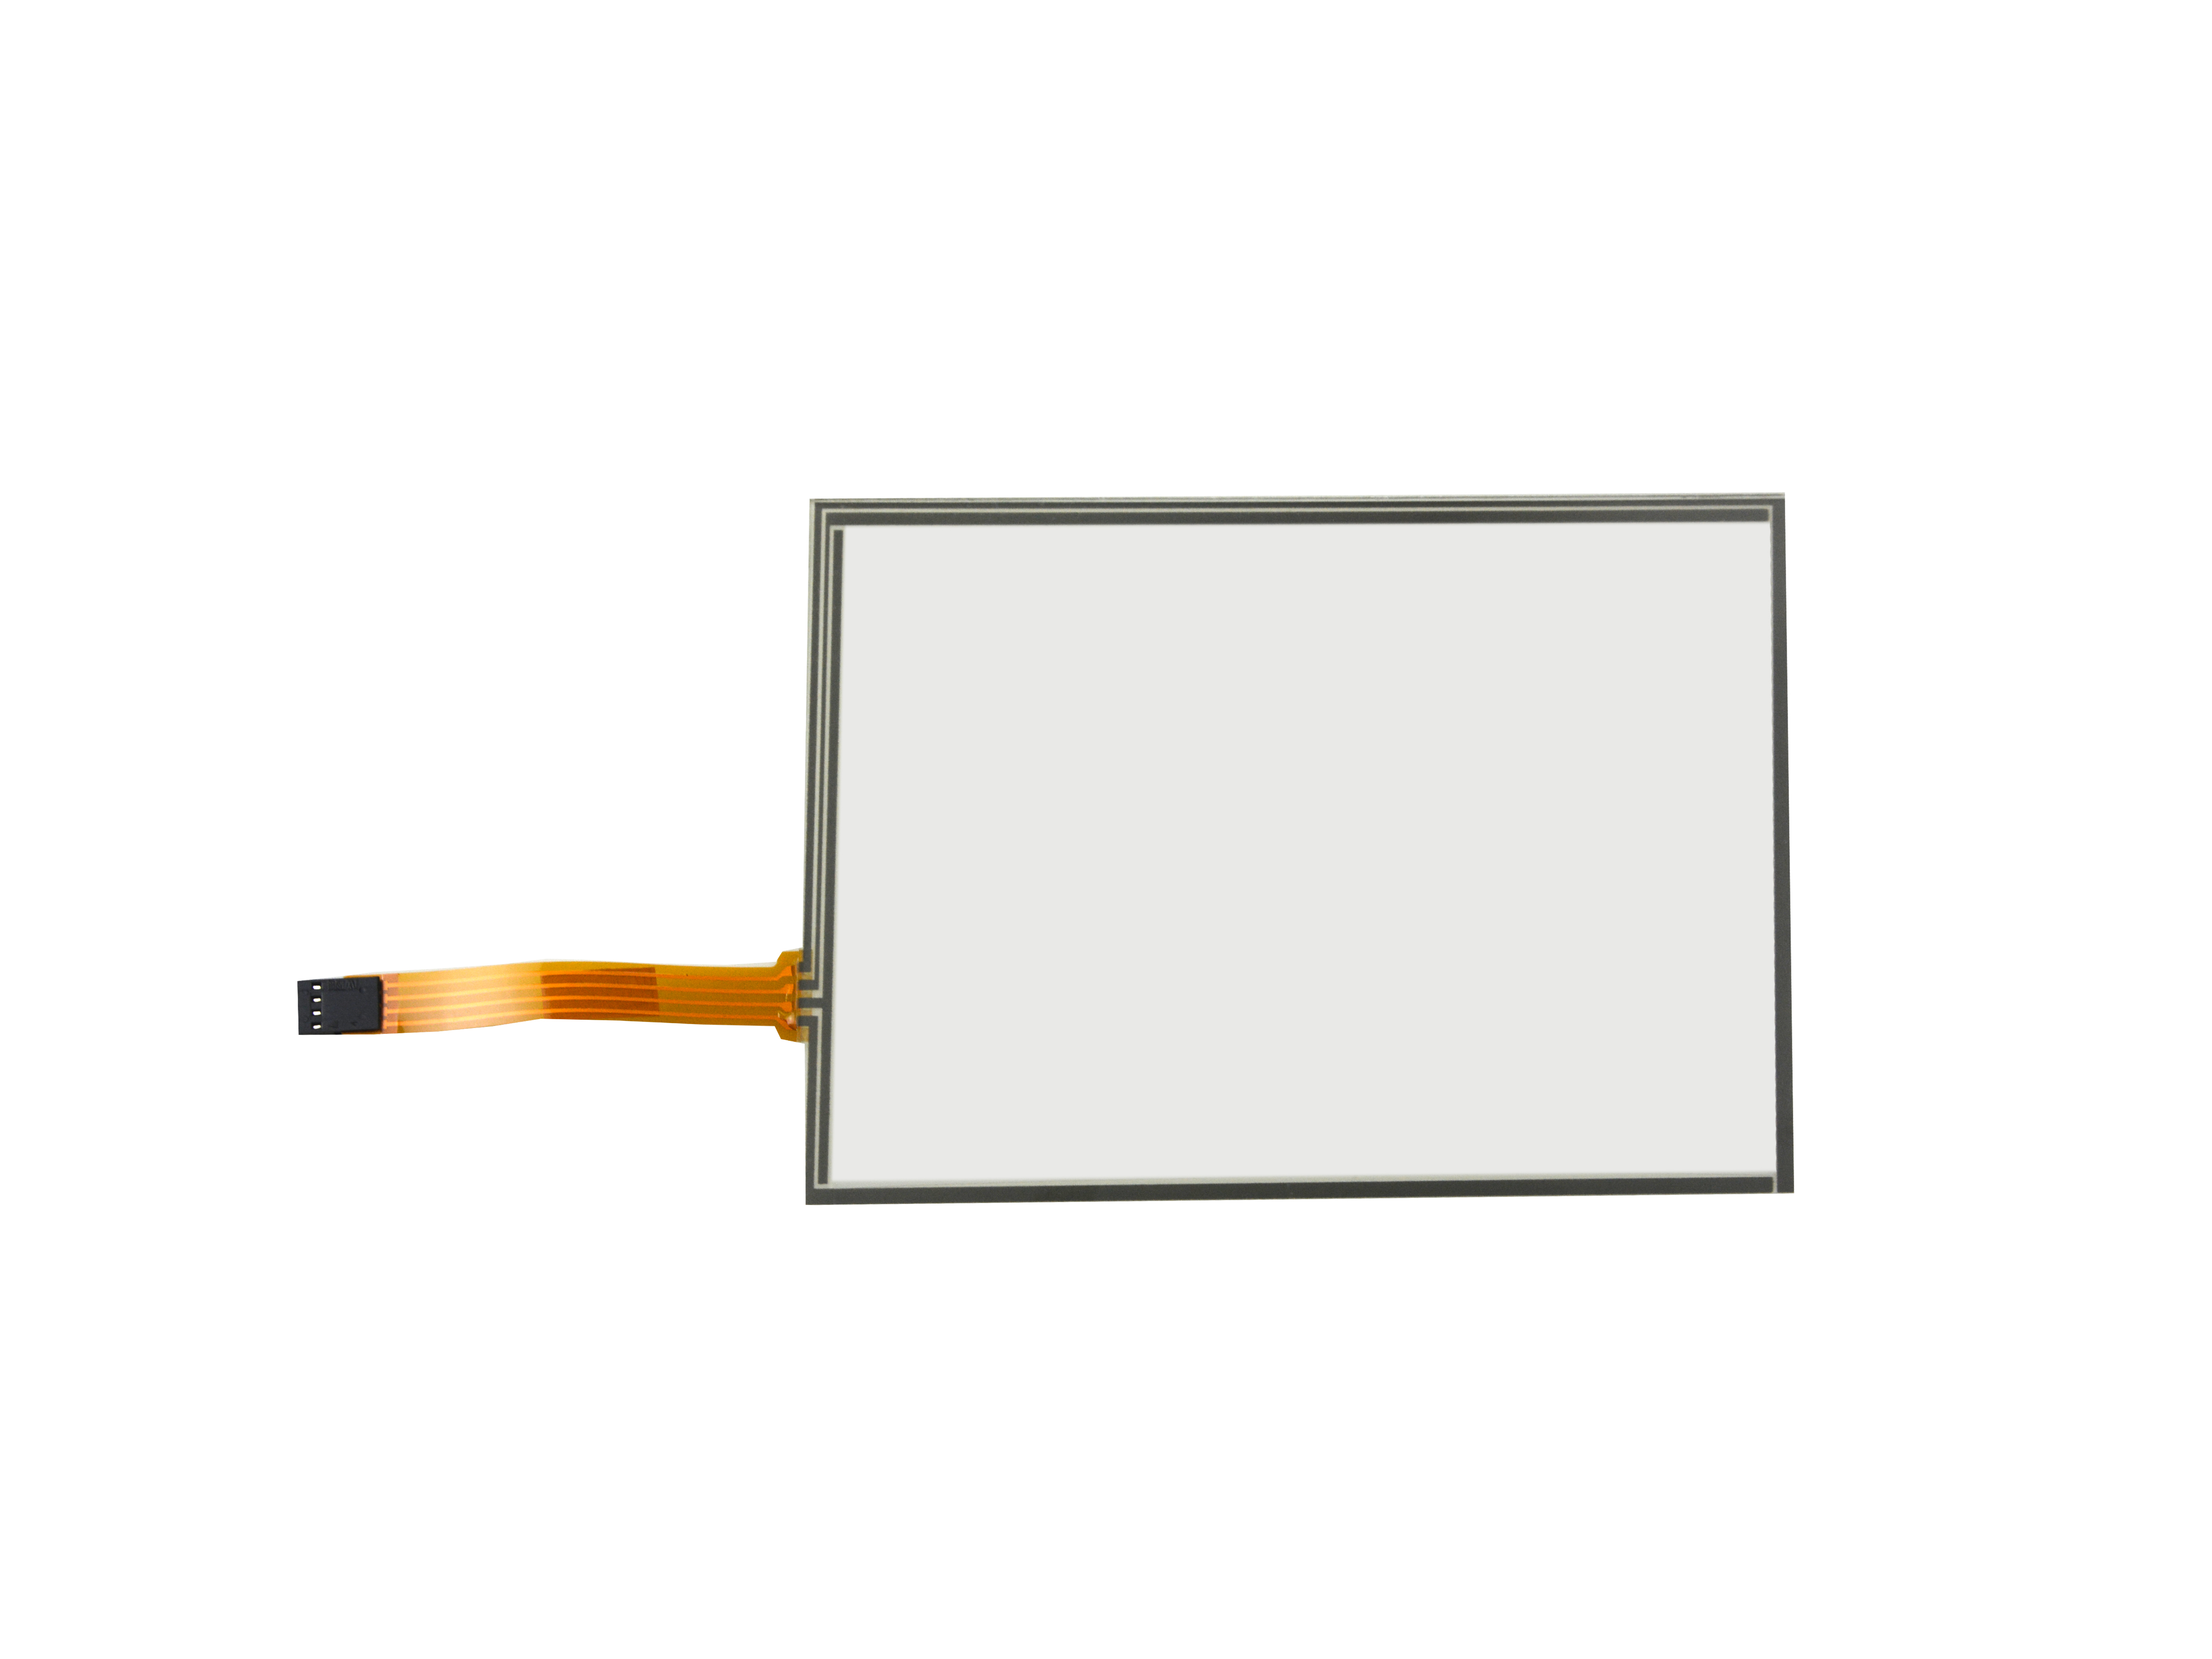 8inch 4 Wire Resistive Touch Panel 183 x 141mm USB Card Kit For 8 Inch  LCD Screen